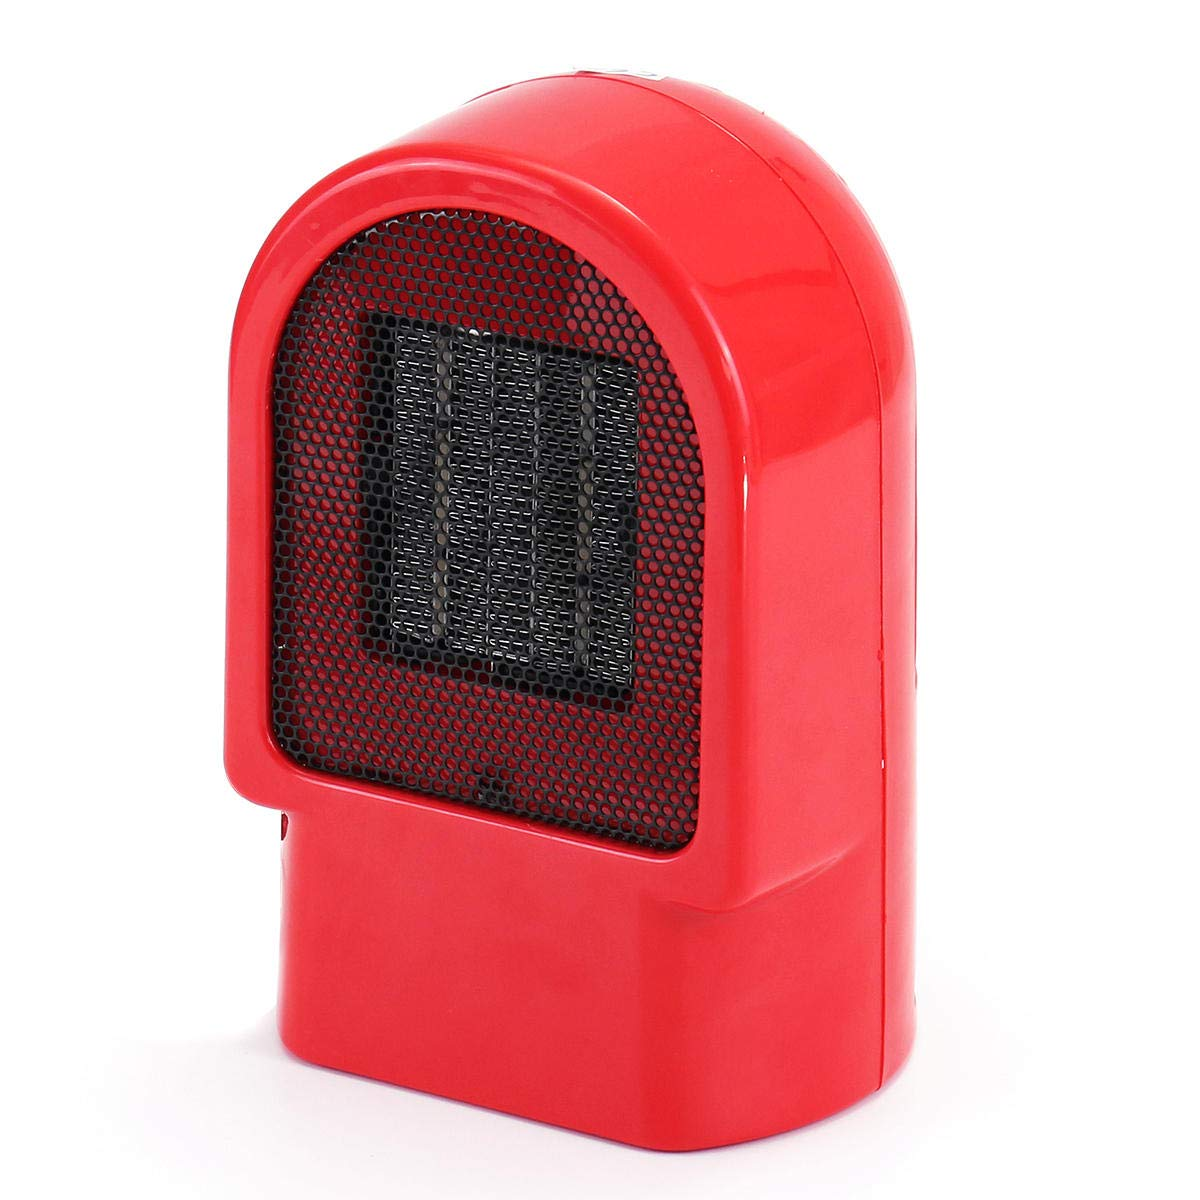 F.S.M. Red Mini Heater Small Desktop Heater Electric Heater Portable Winter Warmer Fan Camping Heating Device - #1 by F.S.M.